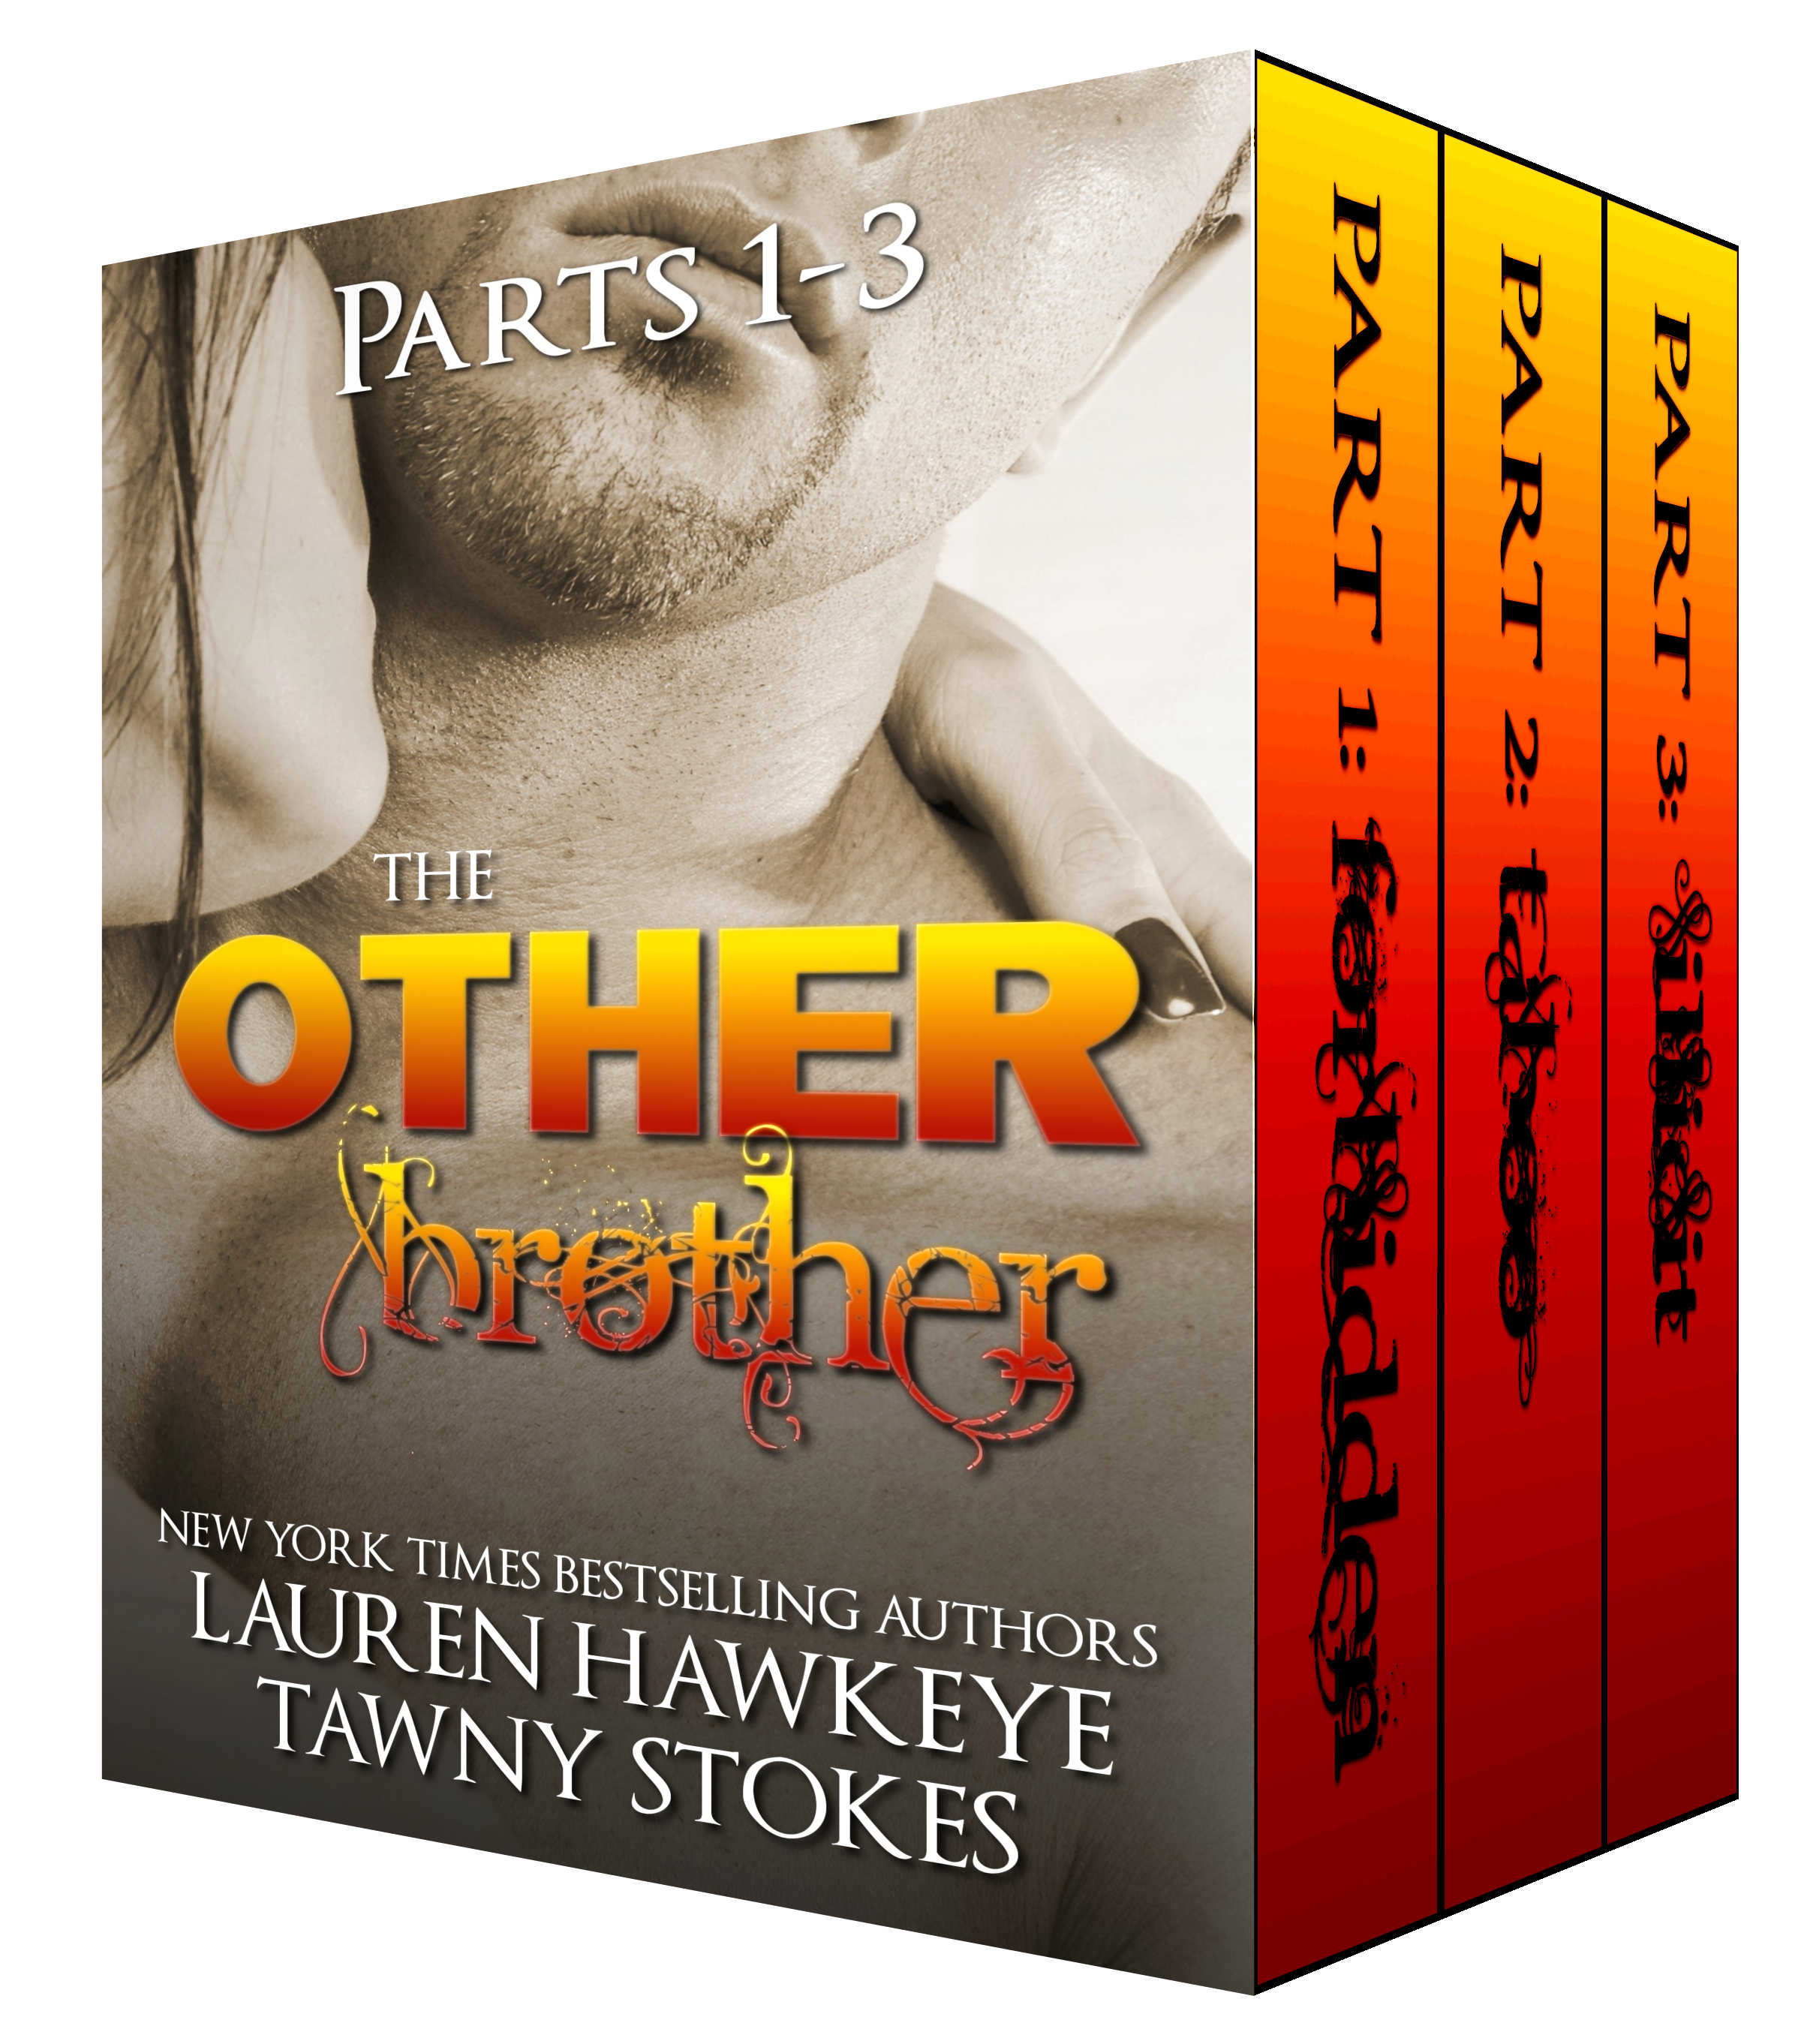 The Other Brother by Tawny Stokes and Lauren Hawkeye